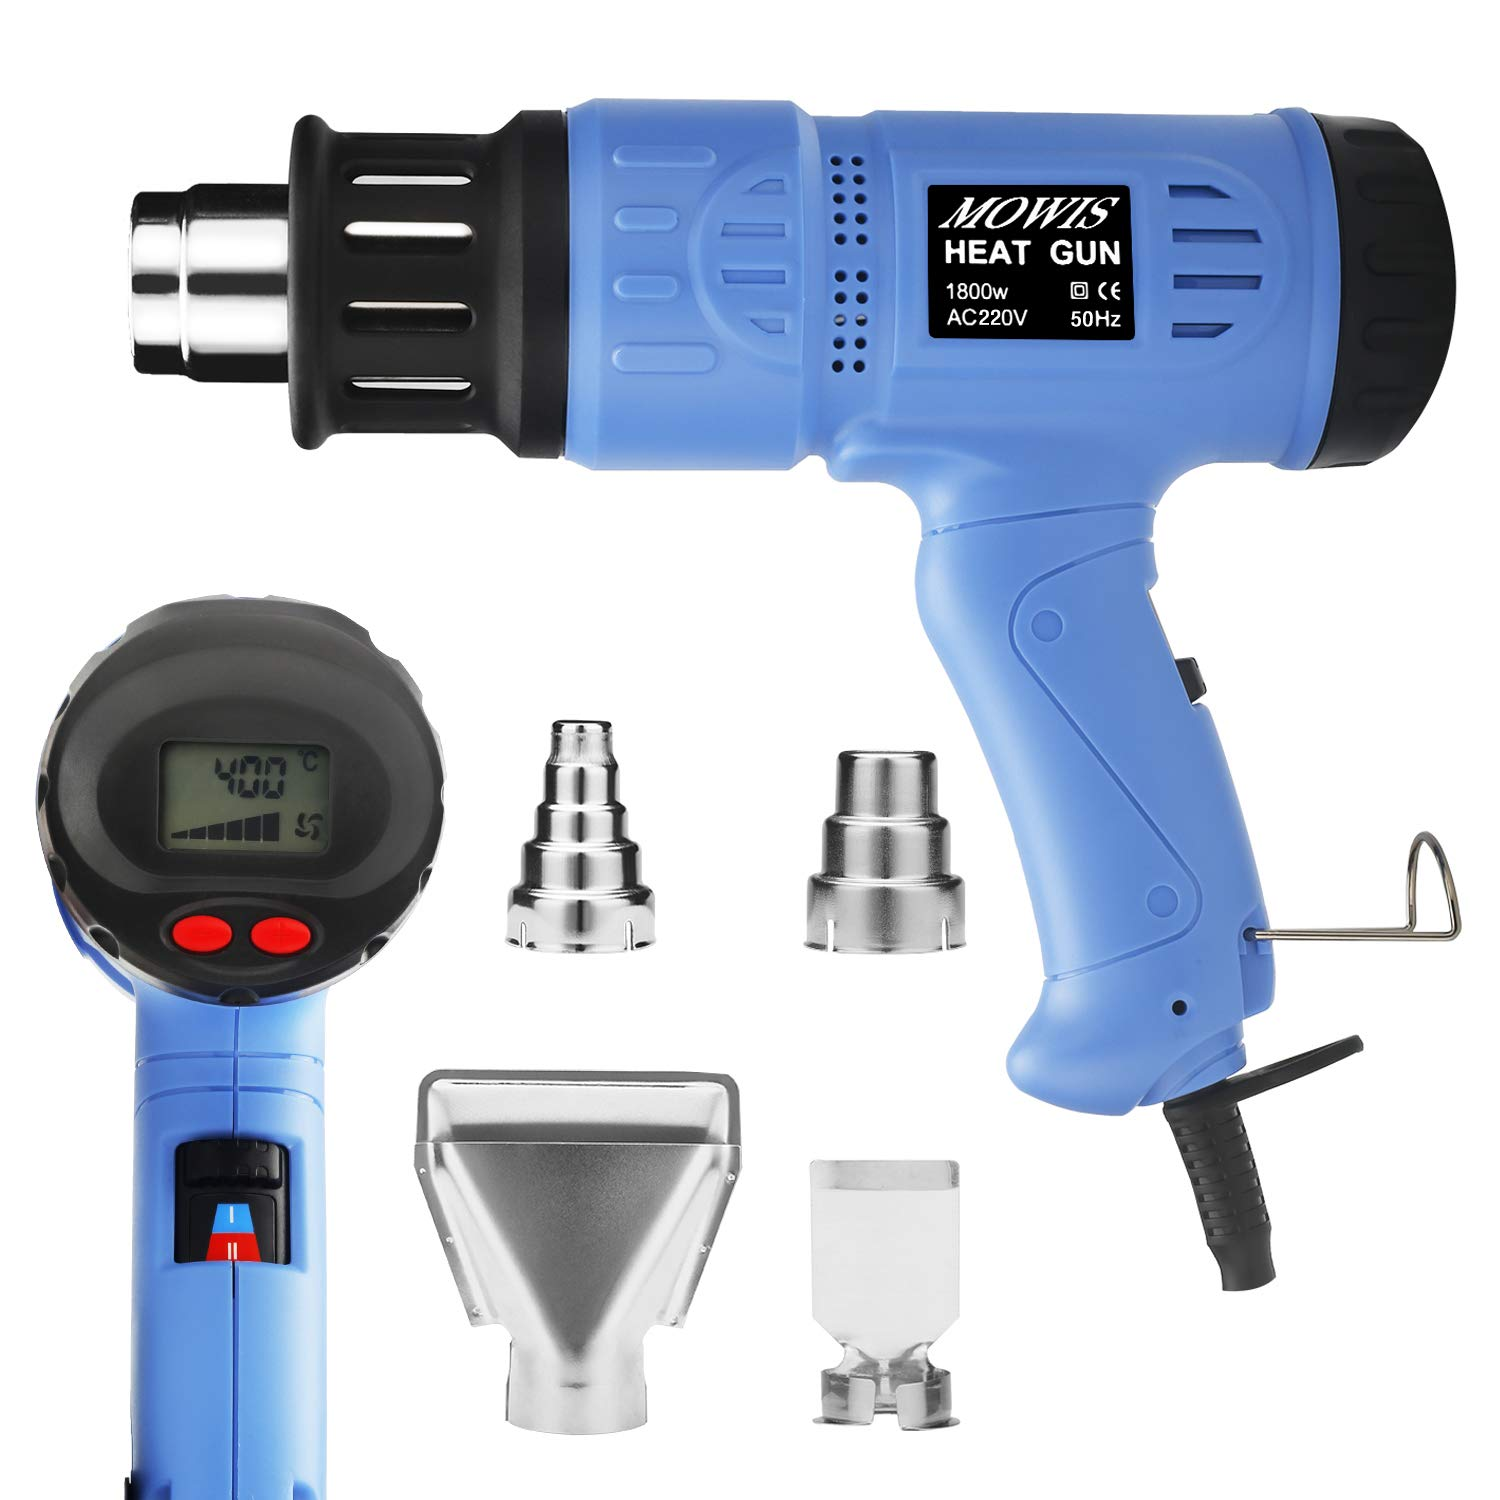 1800W Heat Gun MOWIS Professional Hot Air Gun Kits Adjustable Temperature (100-600℃) with Digital LED Display 240V 50Hz Electric Heat Gun for Shrinking PVC, Stripping Paint, DIY Embossing Shrink Wrapping Drying Paint